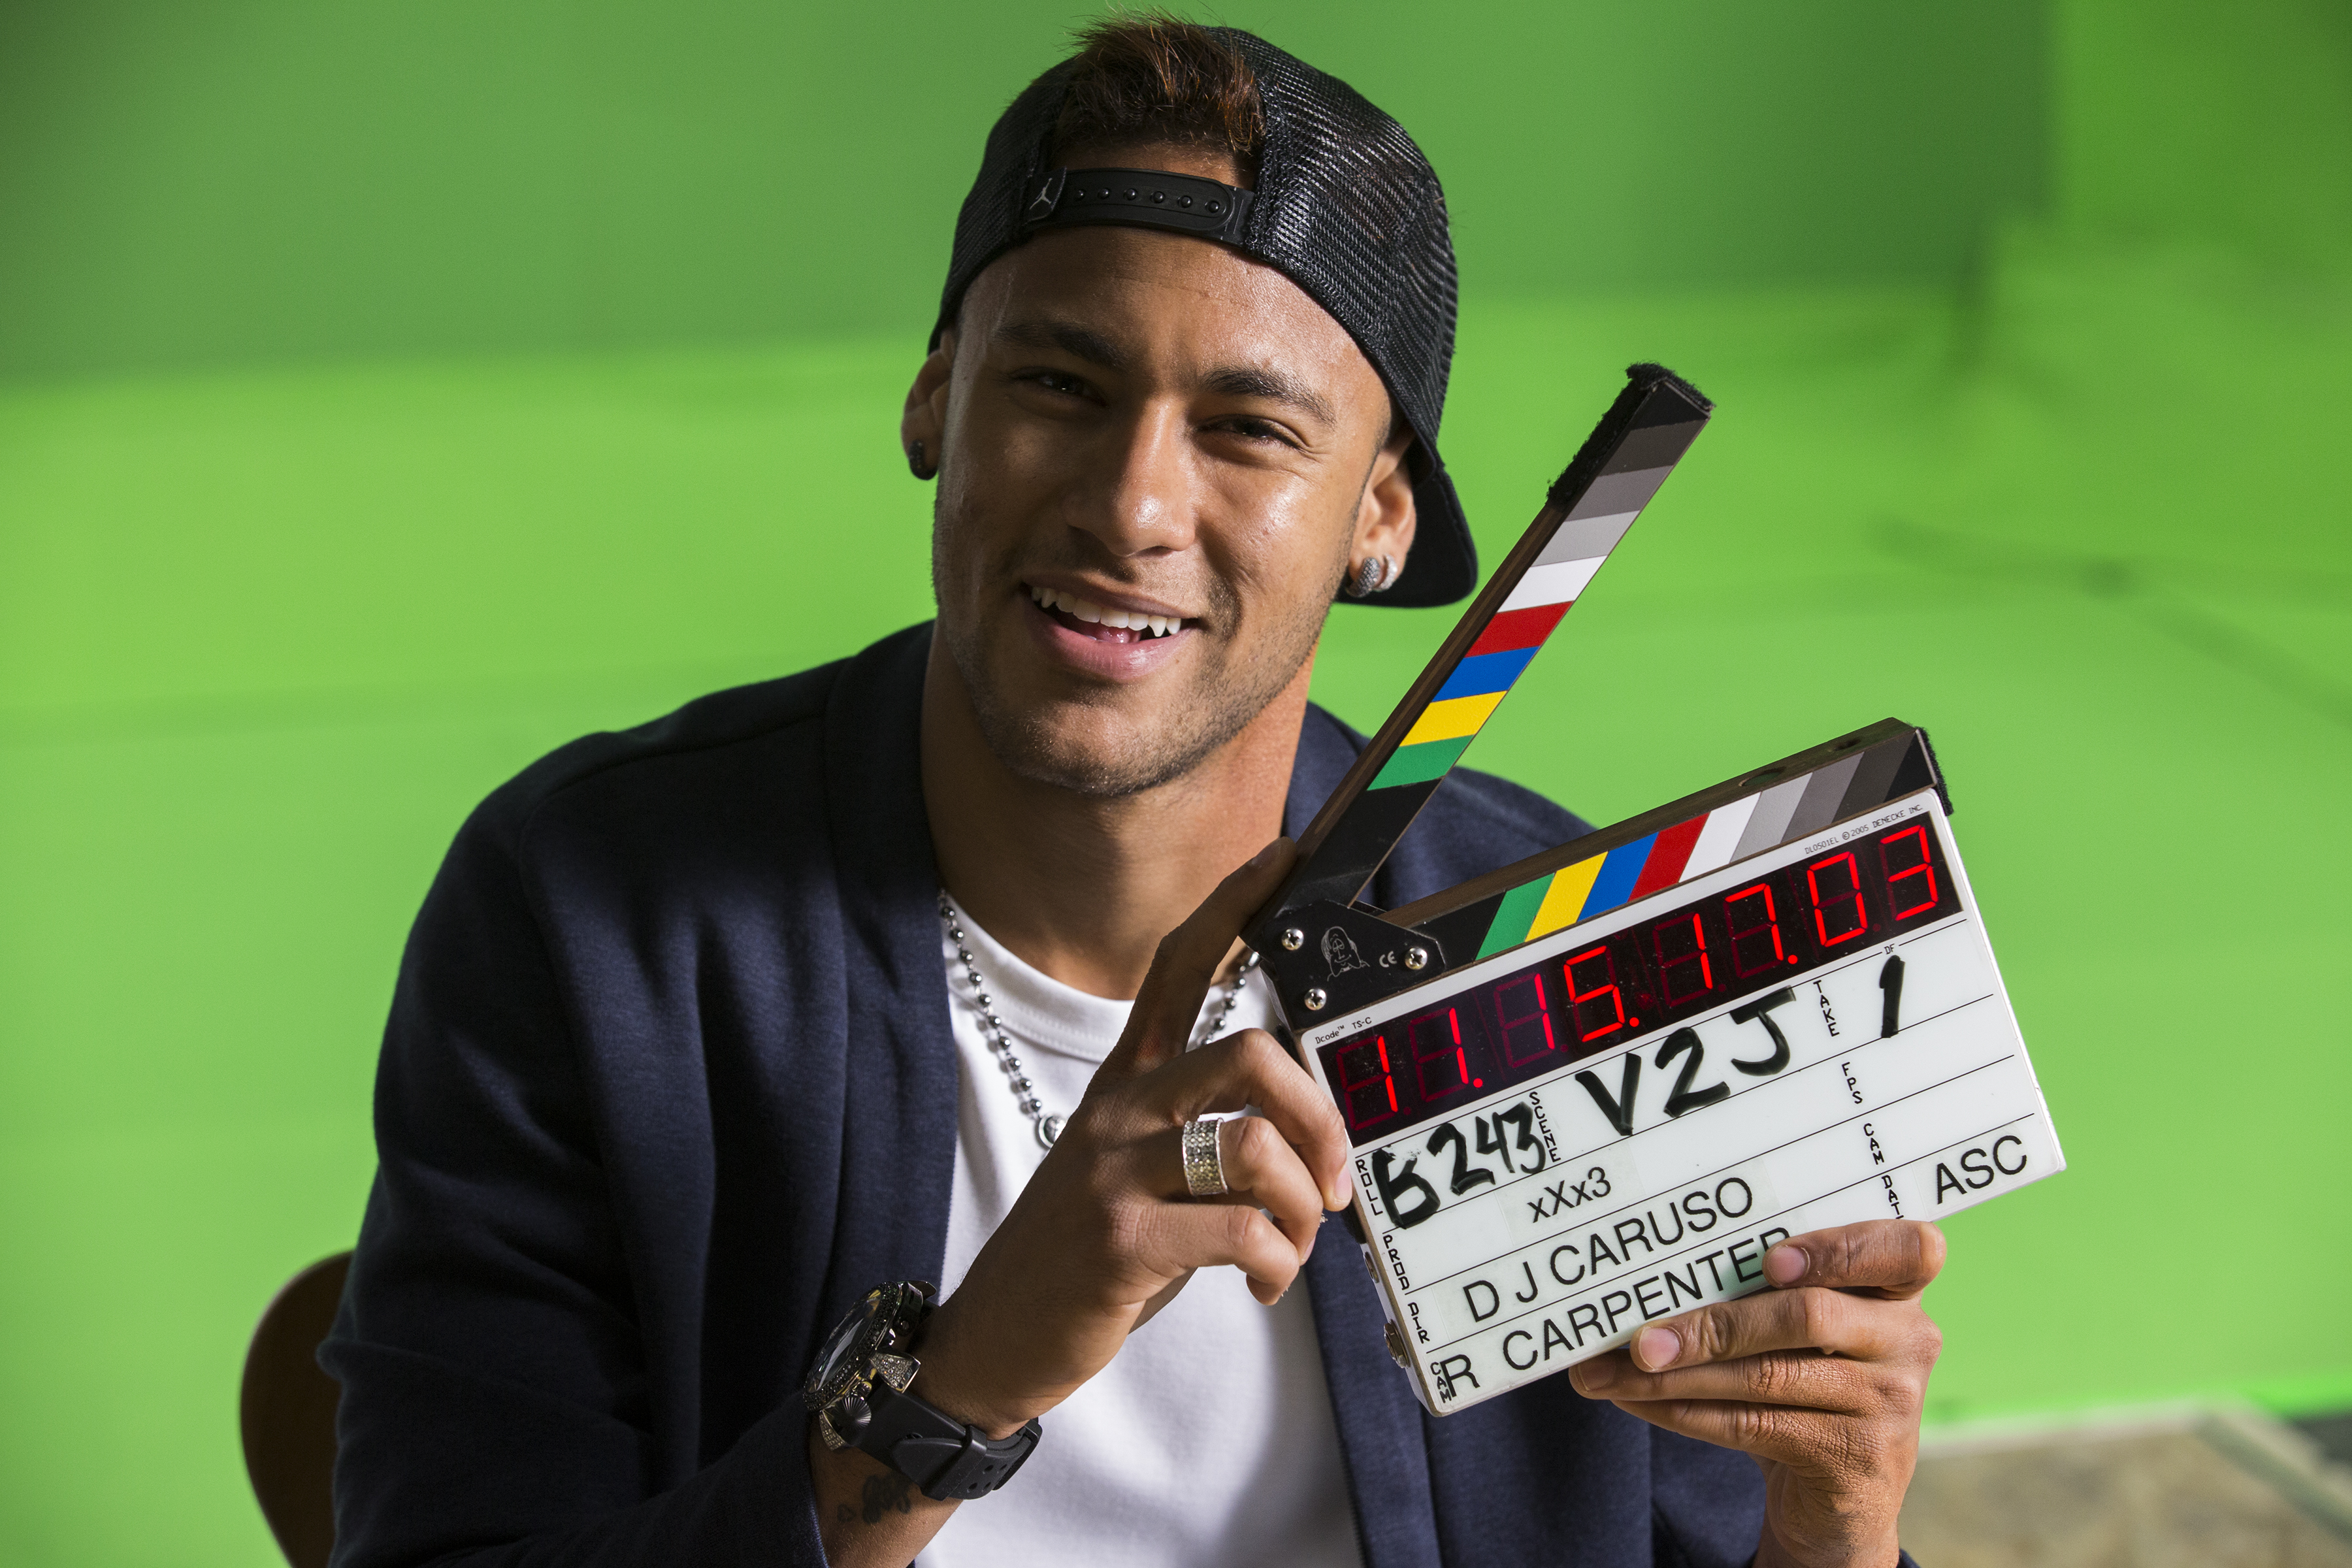 Neymar Jr. participará do filme Triple X 340fc818d58ed